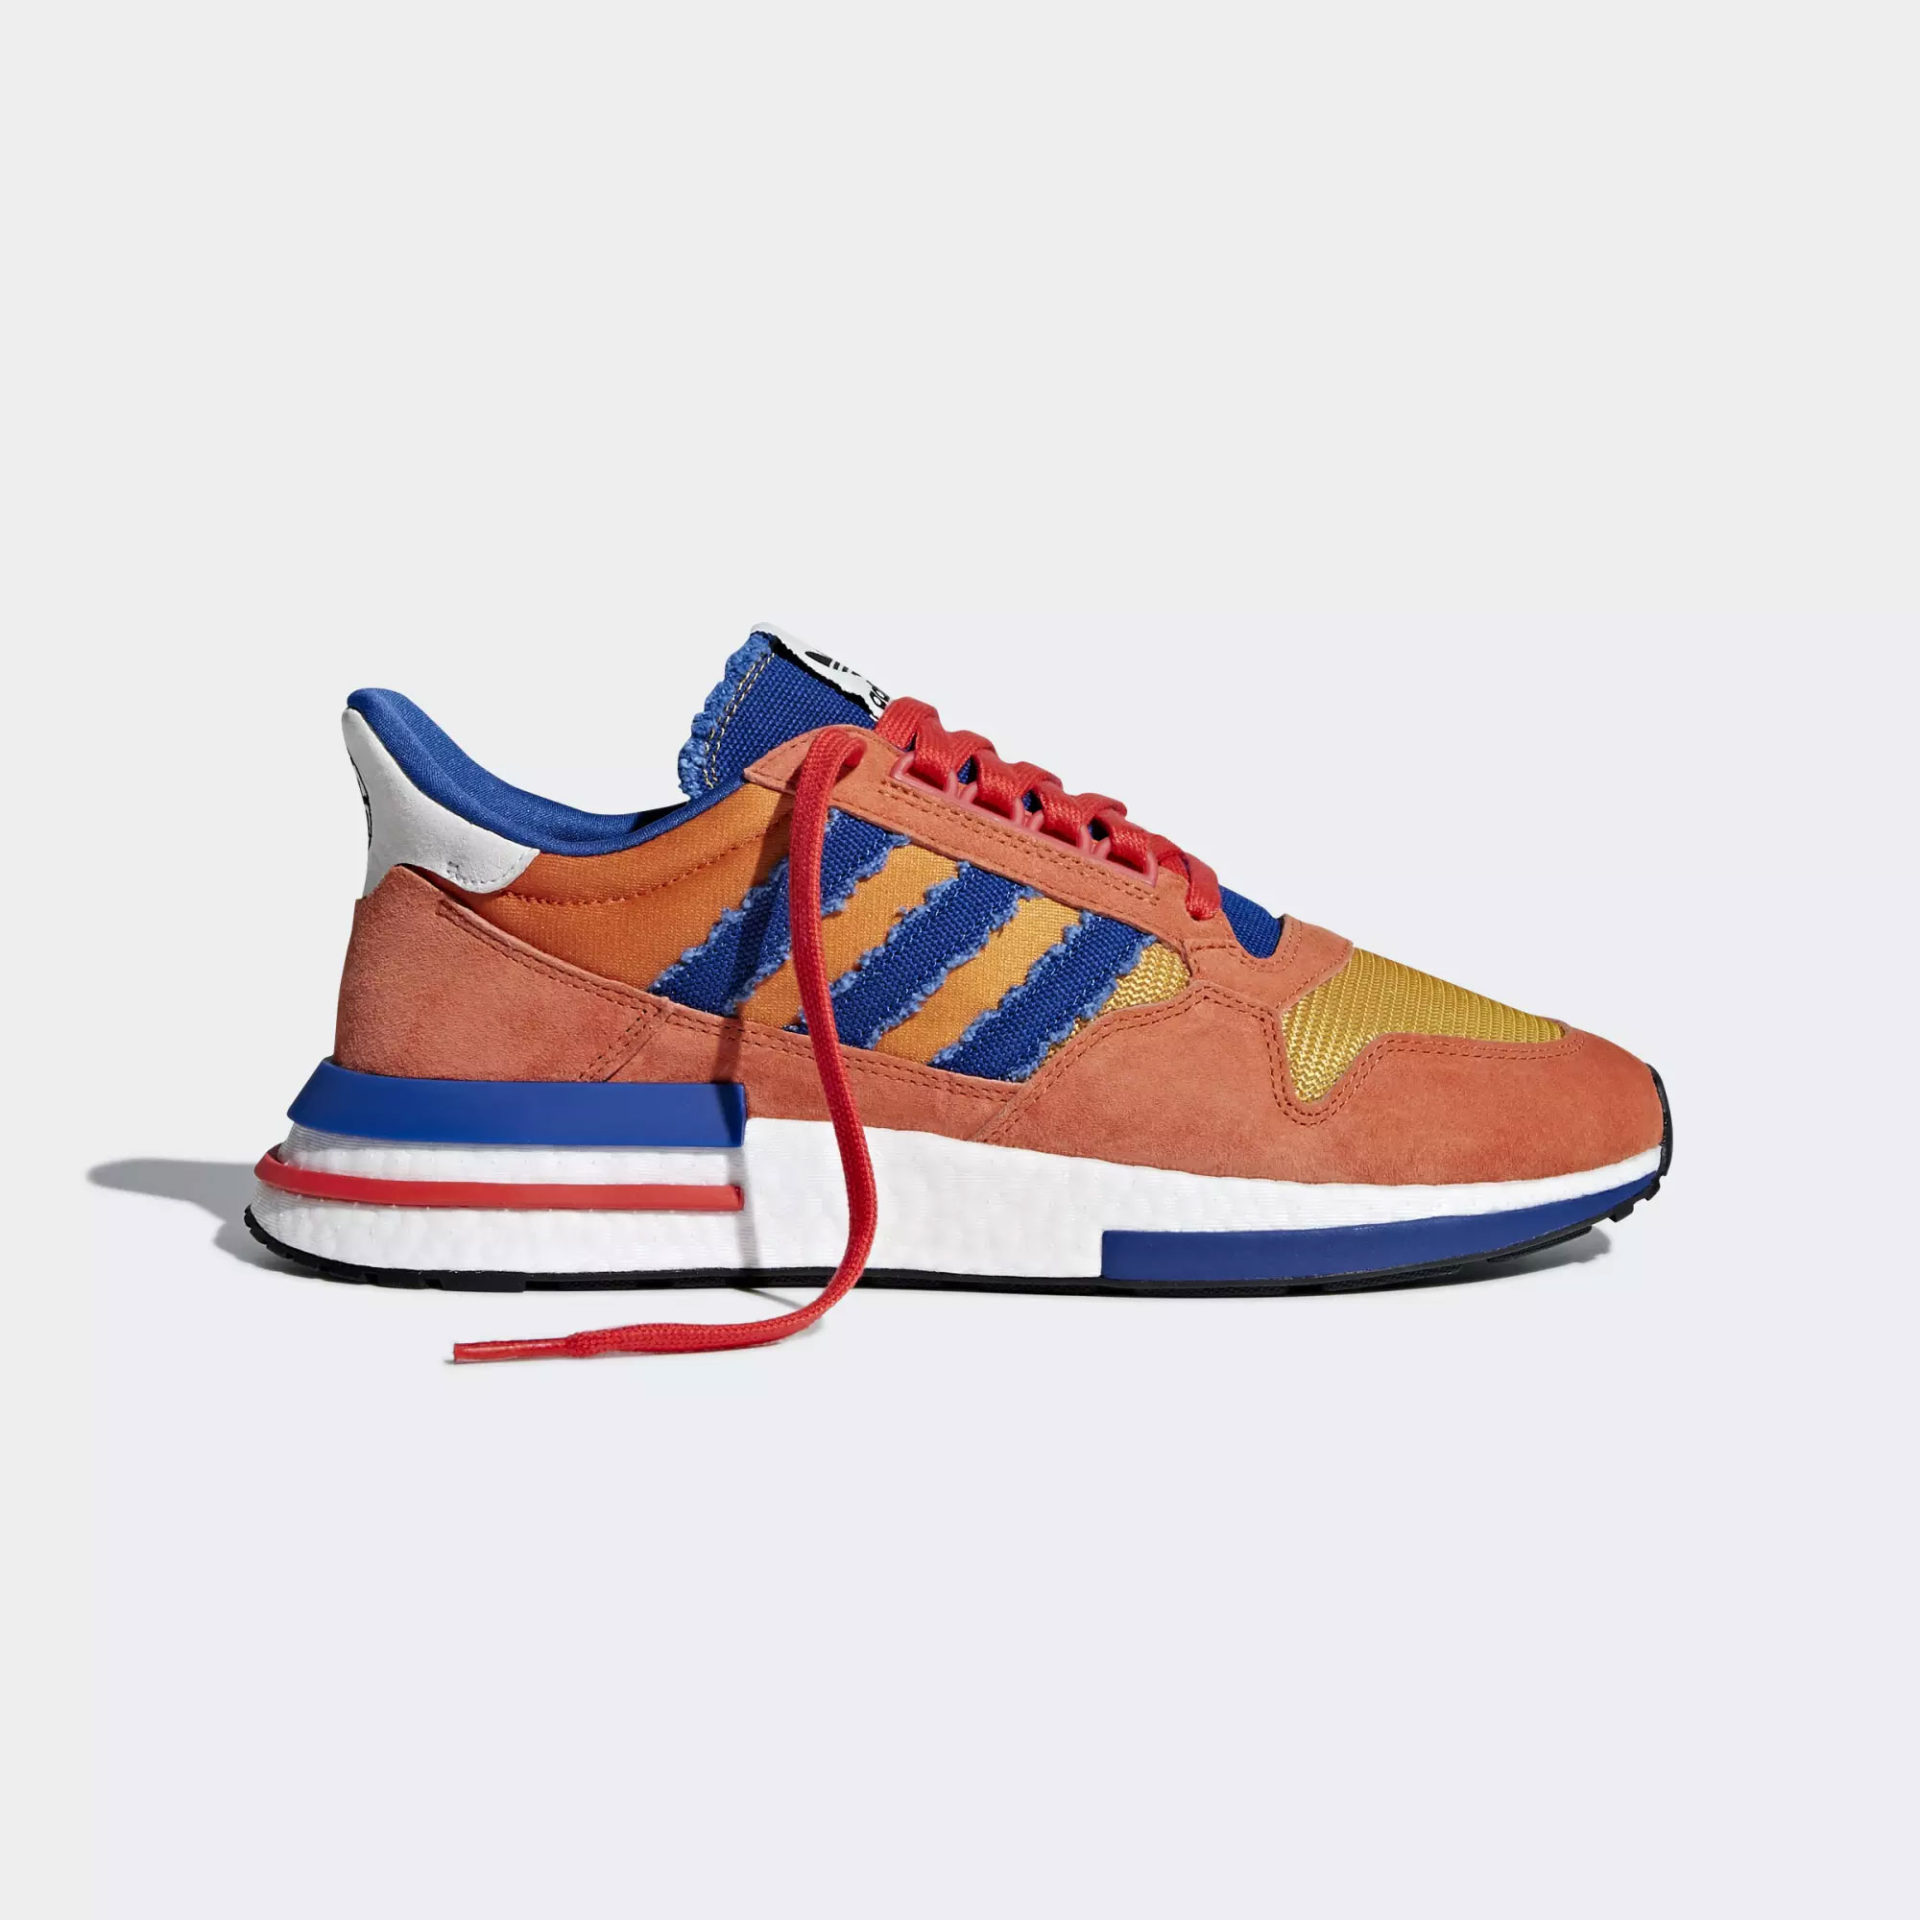 Zx Unboxing Adidas Des Rm Dragon Ball 500 Goku Z sQxthCdr